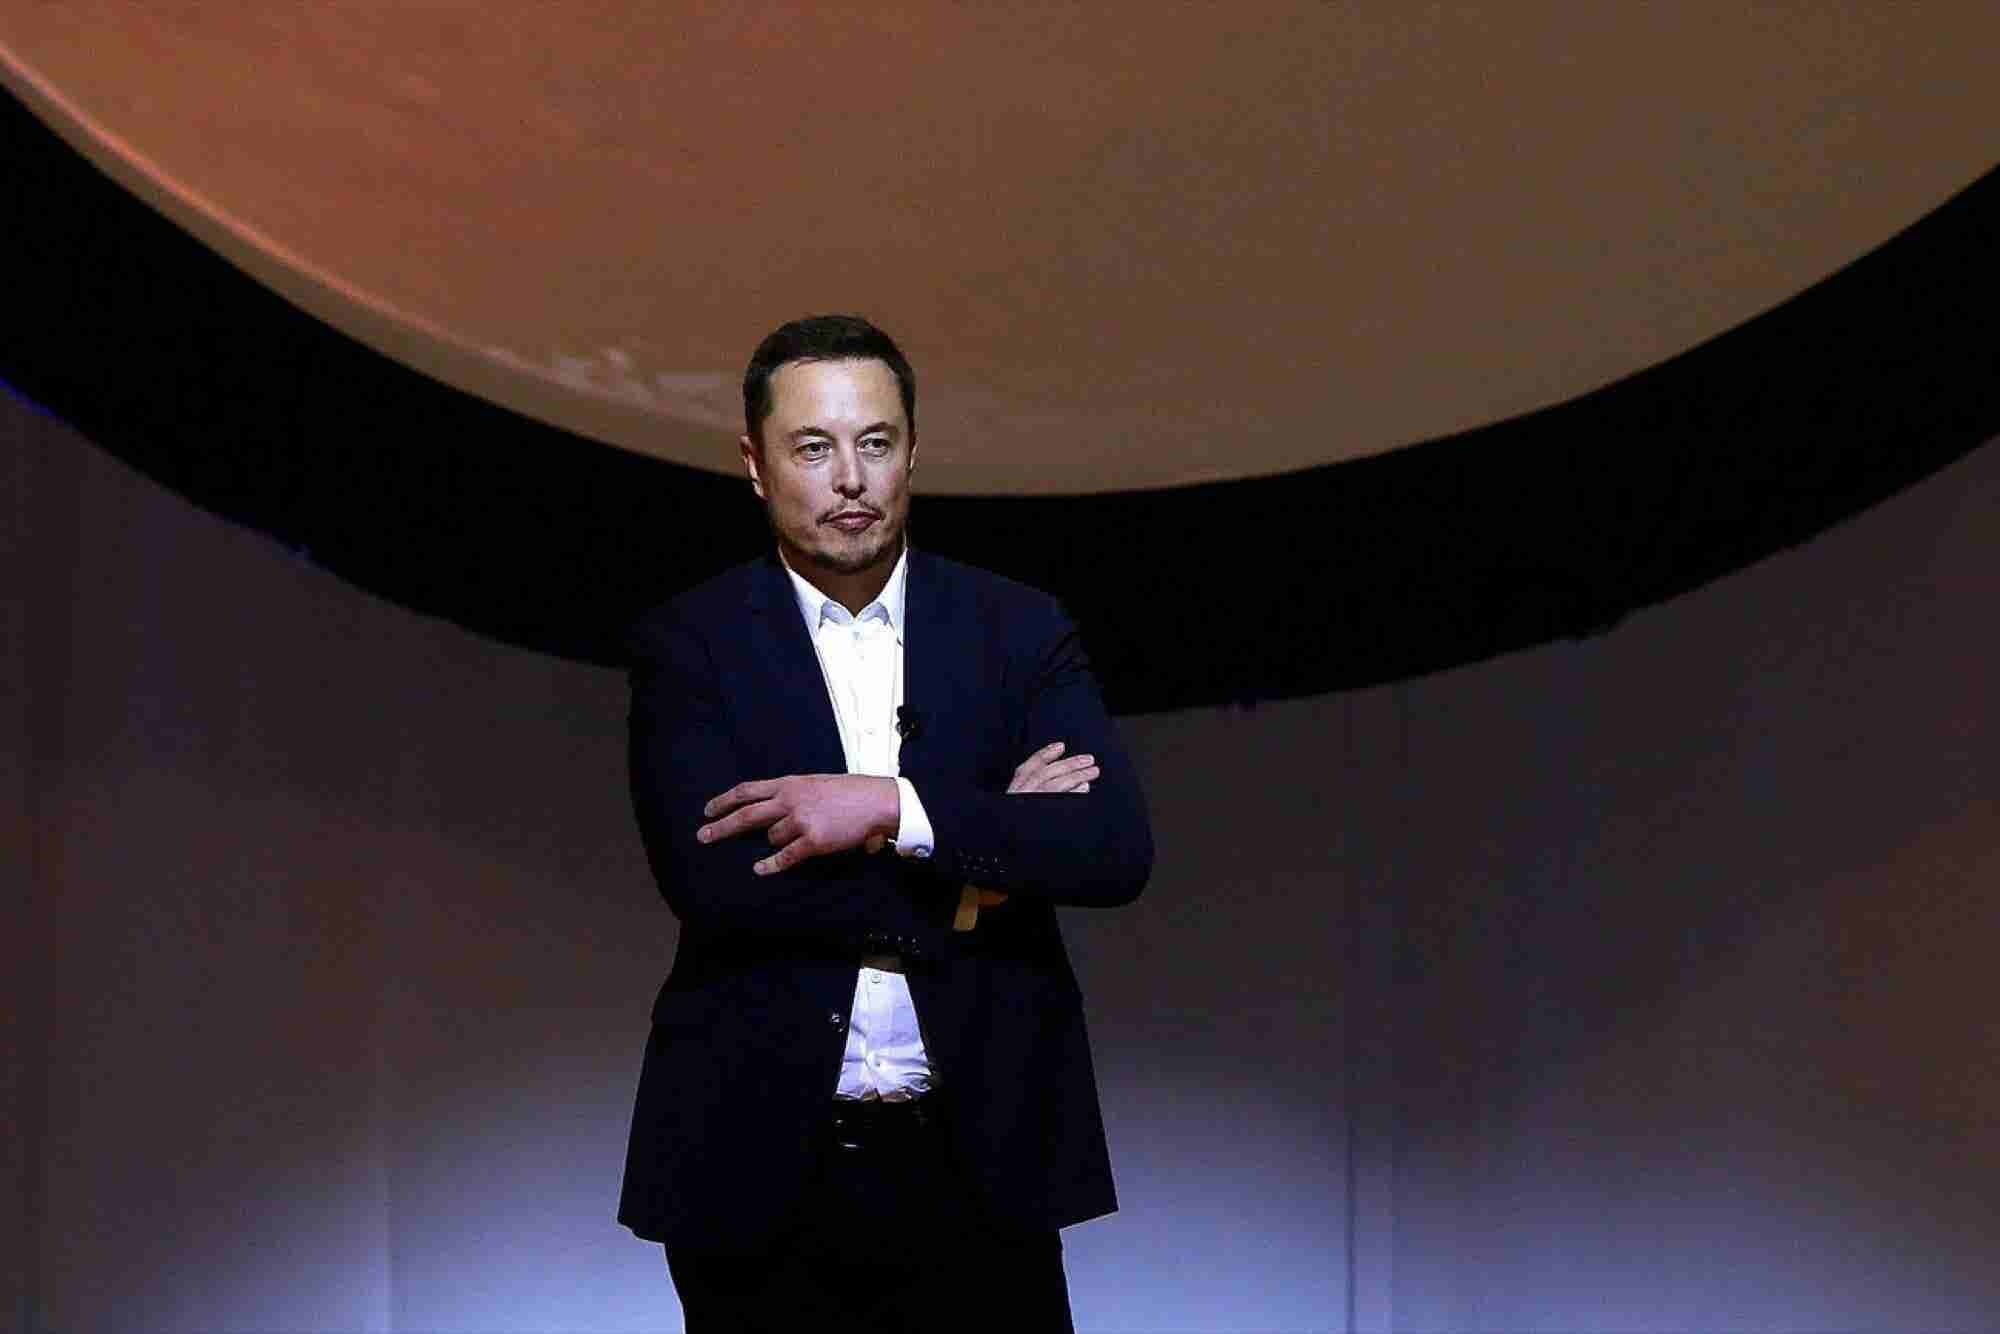 Elon Musk Brings His Mars Plan Before the Scientific Community